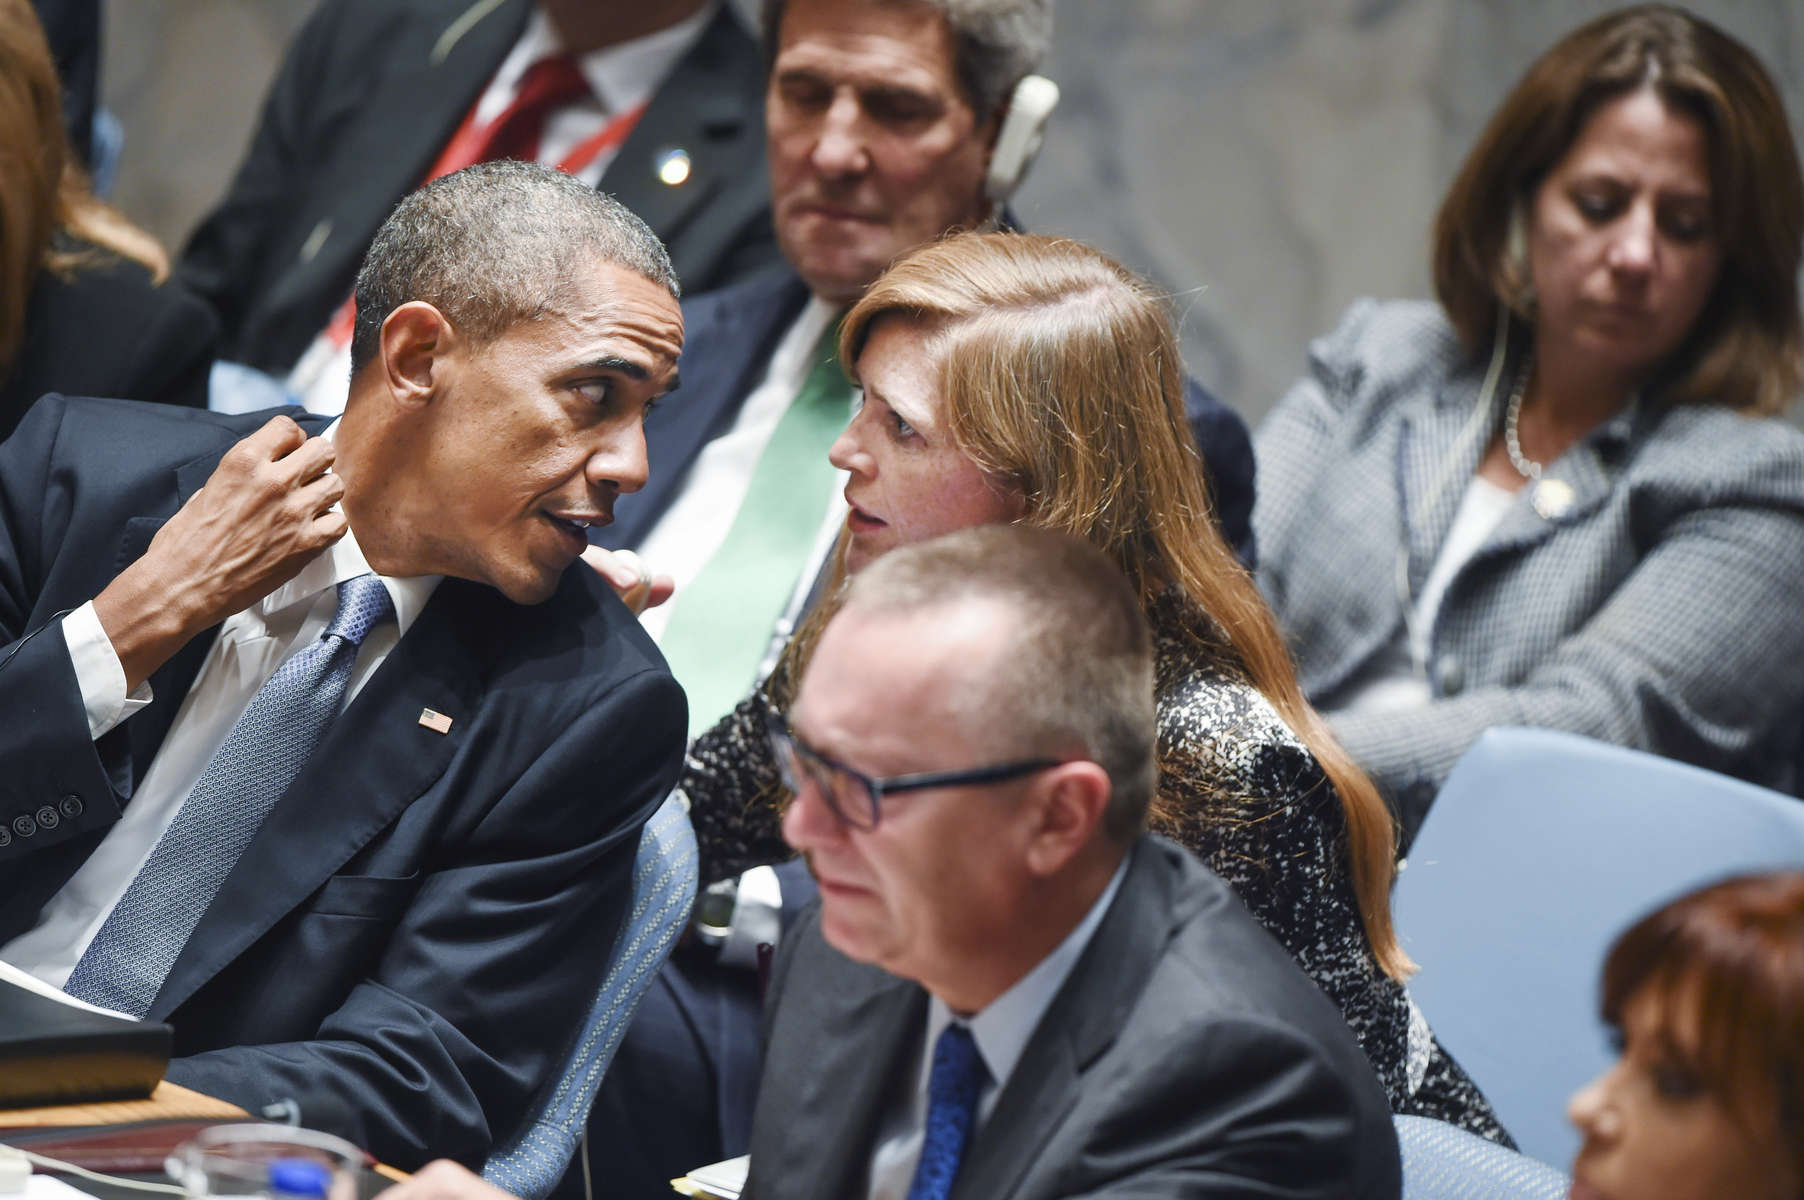 President Barak Obama leans over to chat with United States U.N. Ambassador Samantha Power, while sitting in as President of the UN Security Council at the United Nations Headquarters in New York City.